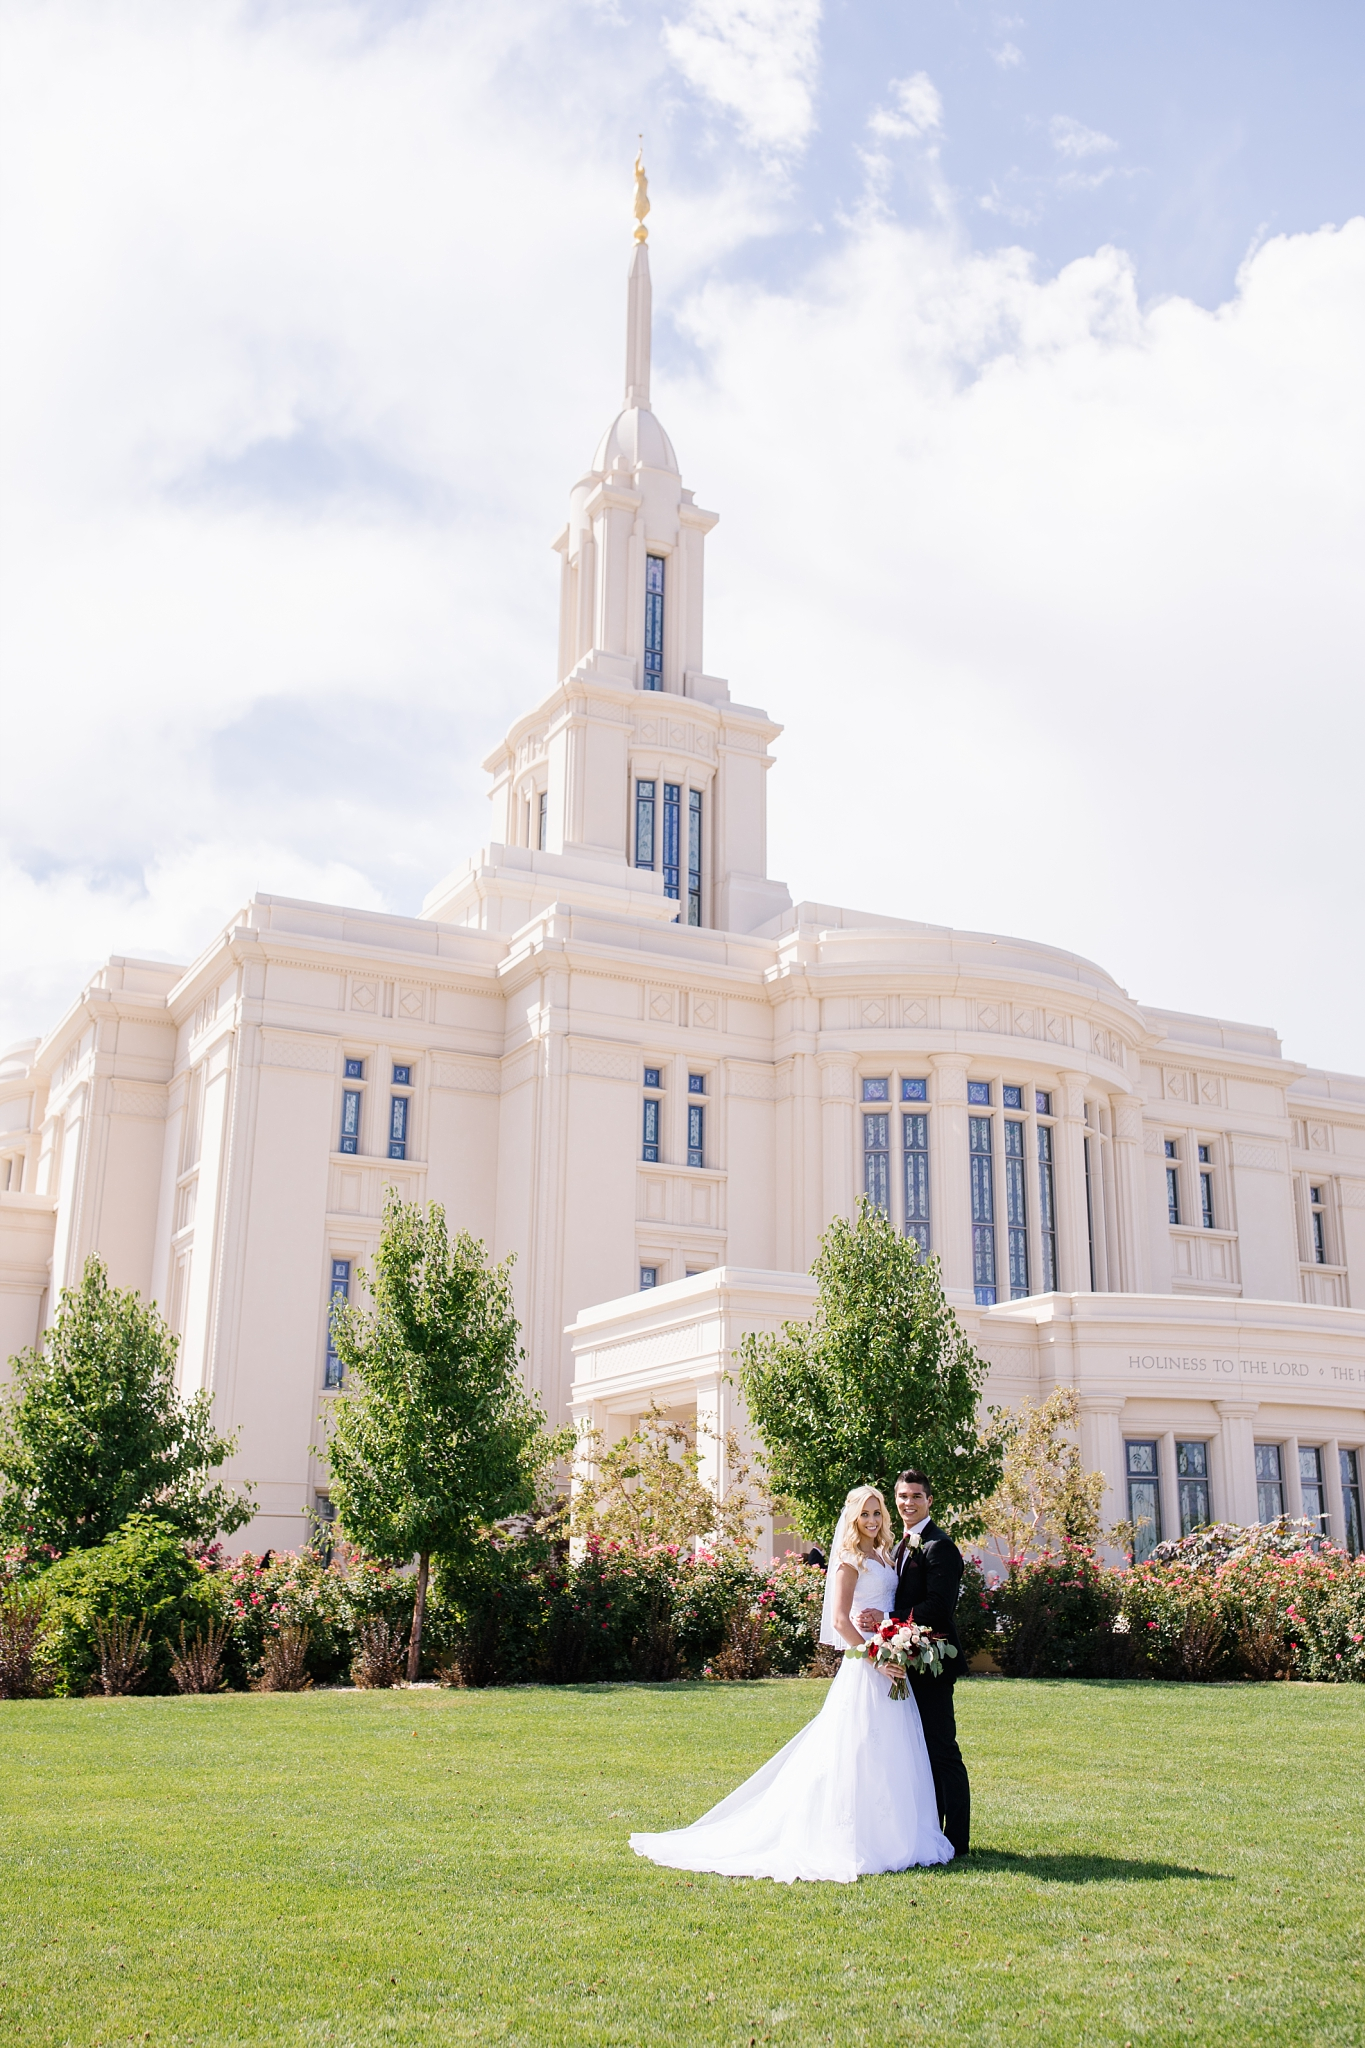 HannahChaseWedding-158_Lizzie-B-Imagery-Utah-Wedding-Photographer-Bridal-Photography-Payson-Utah-Temple-Clarion-Gardens-Catering-and-Events-Center.jpg